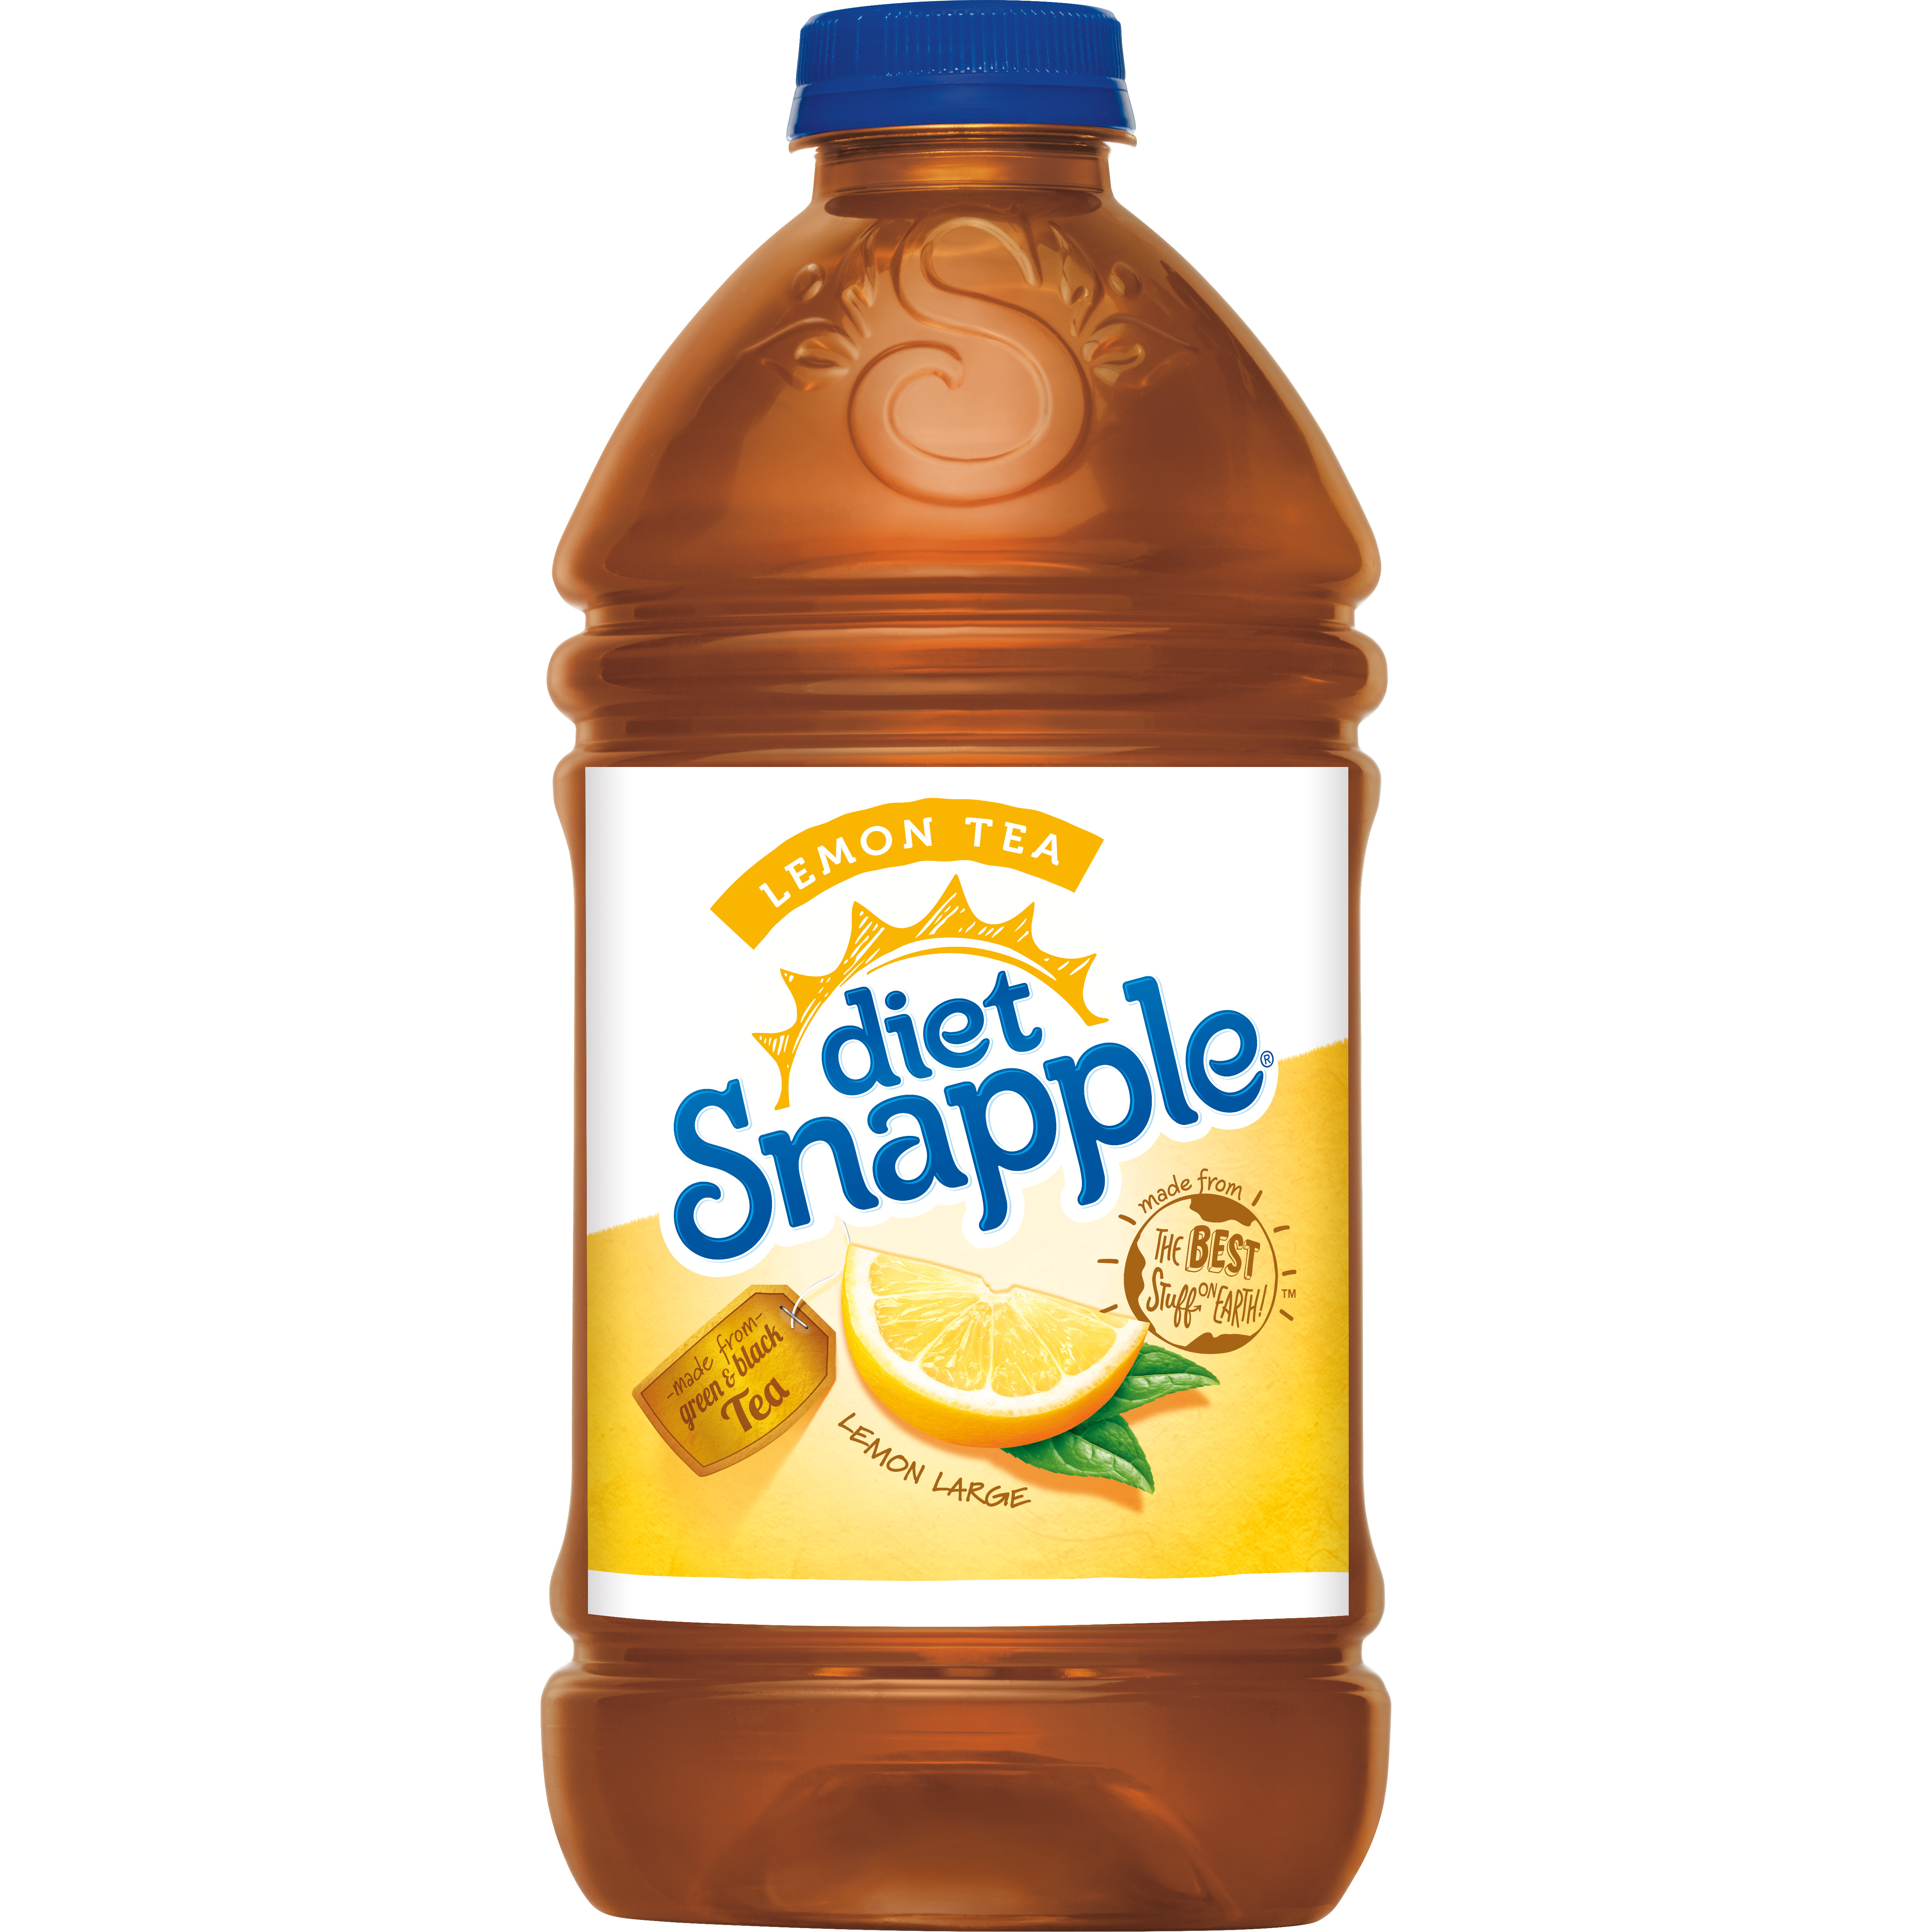 Diet Snapple Lemon Tea, 64 fl oz